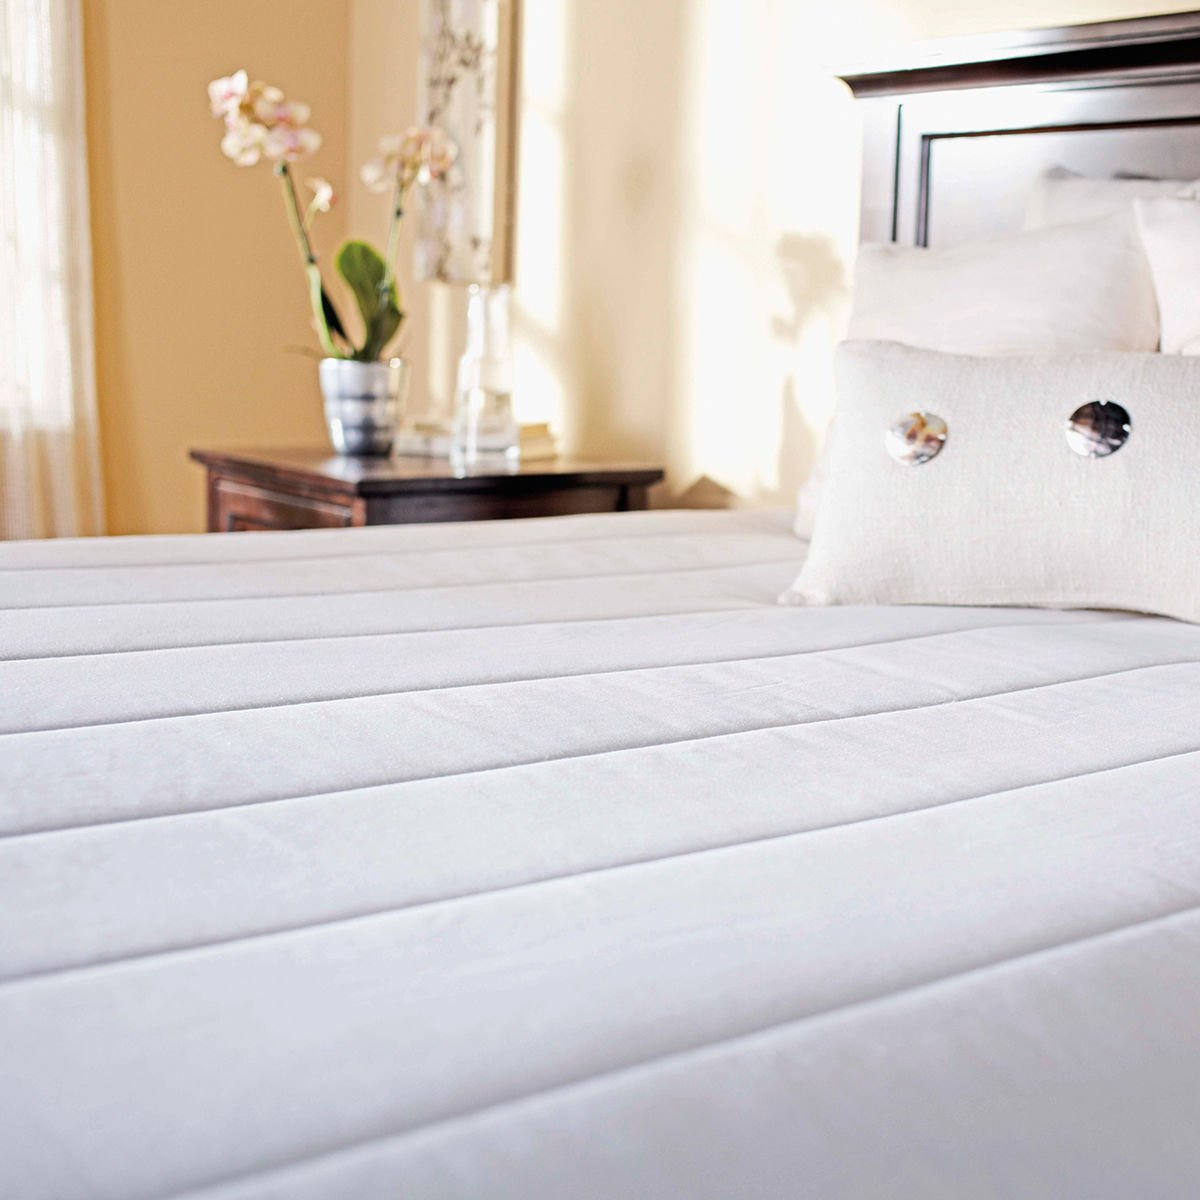 Sunbeam Quilted Heated Mattress Pad, Full Jarden Consumer Solutions MSU3BFS-P000-12D50